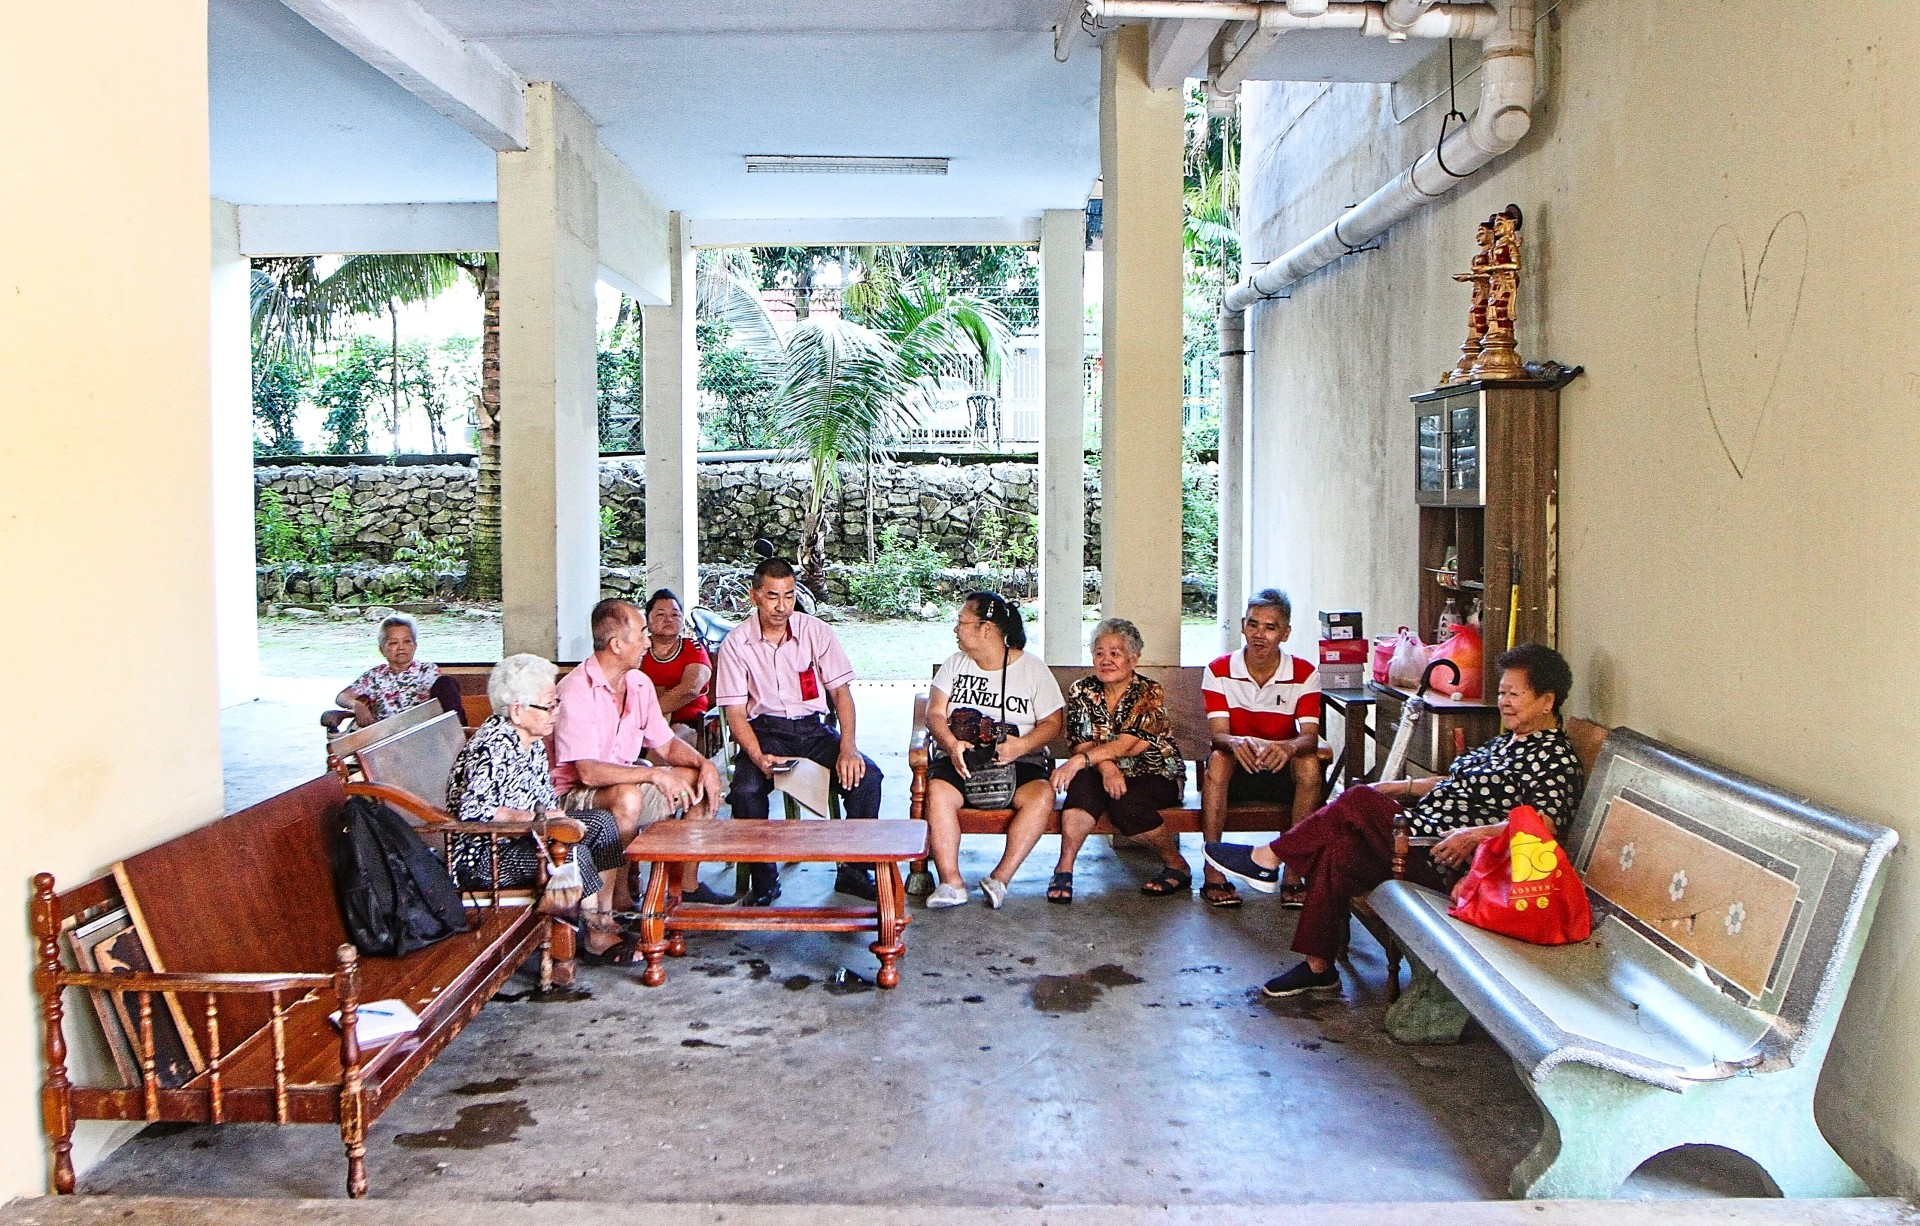 The elderly residents of Pekan Kepong PPR habitually gather at the common area to chat and have tea.